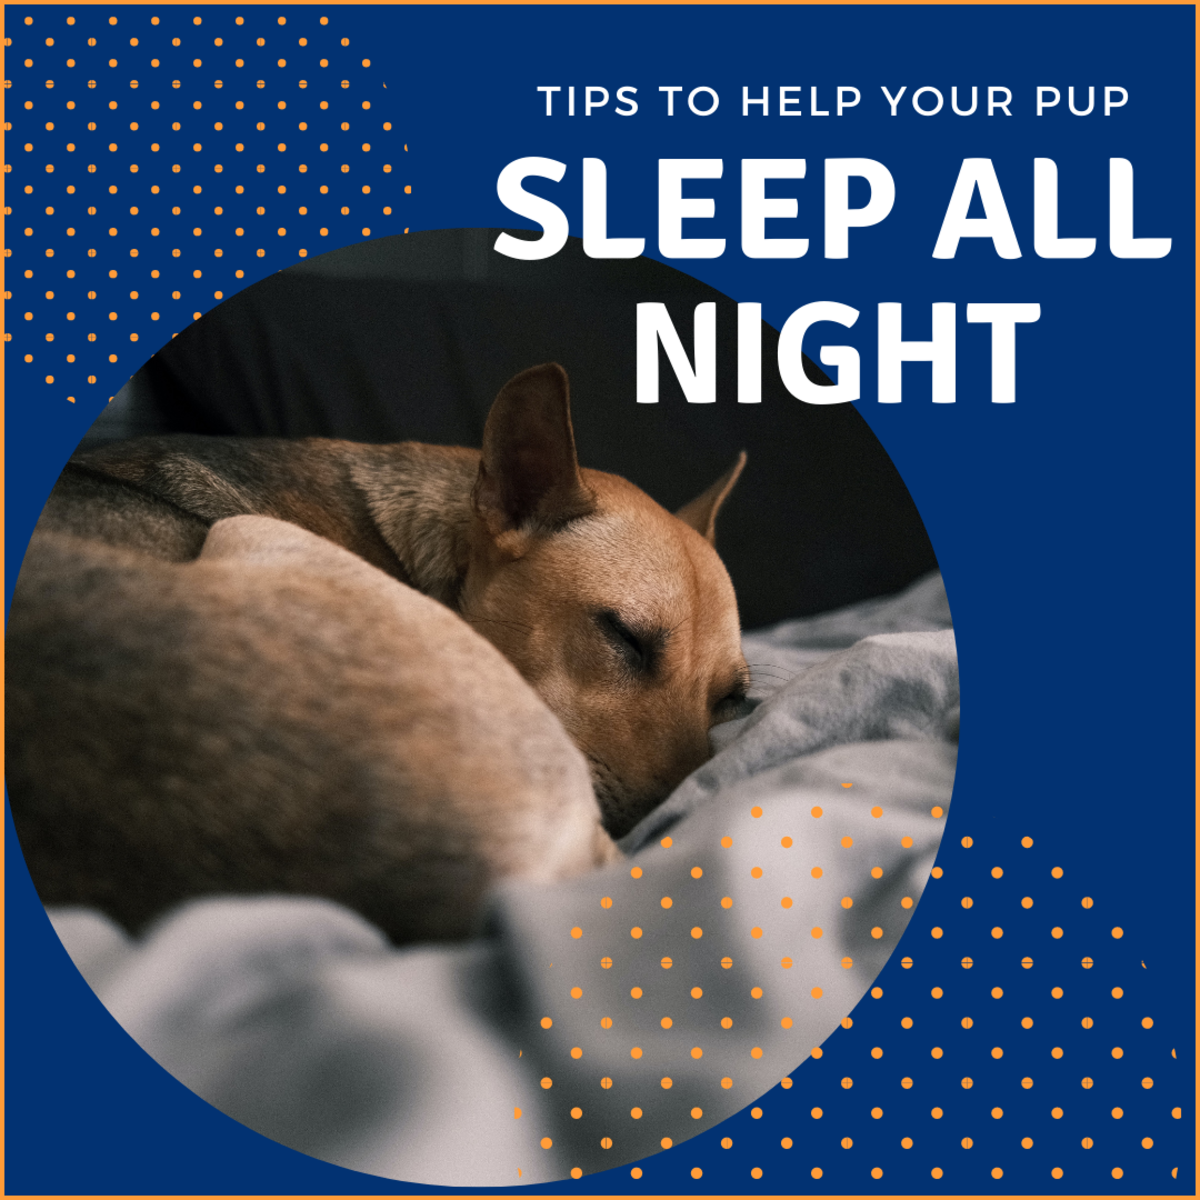 Learn how to help your pup sleep better at night so that you can too!